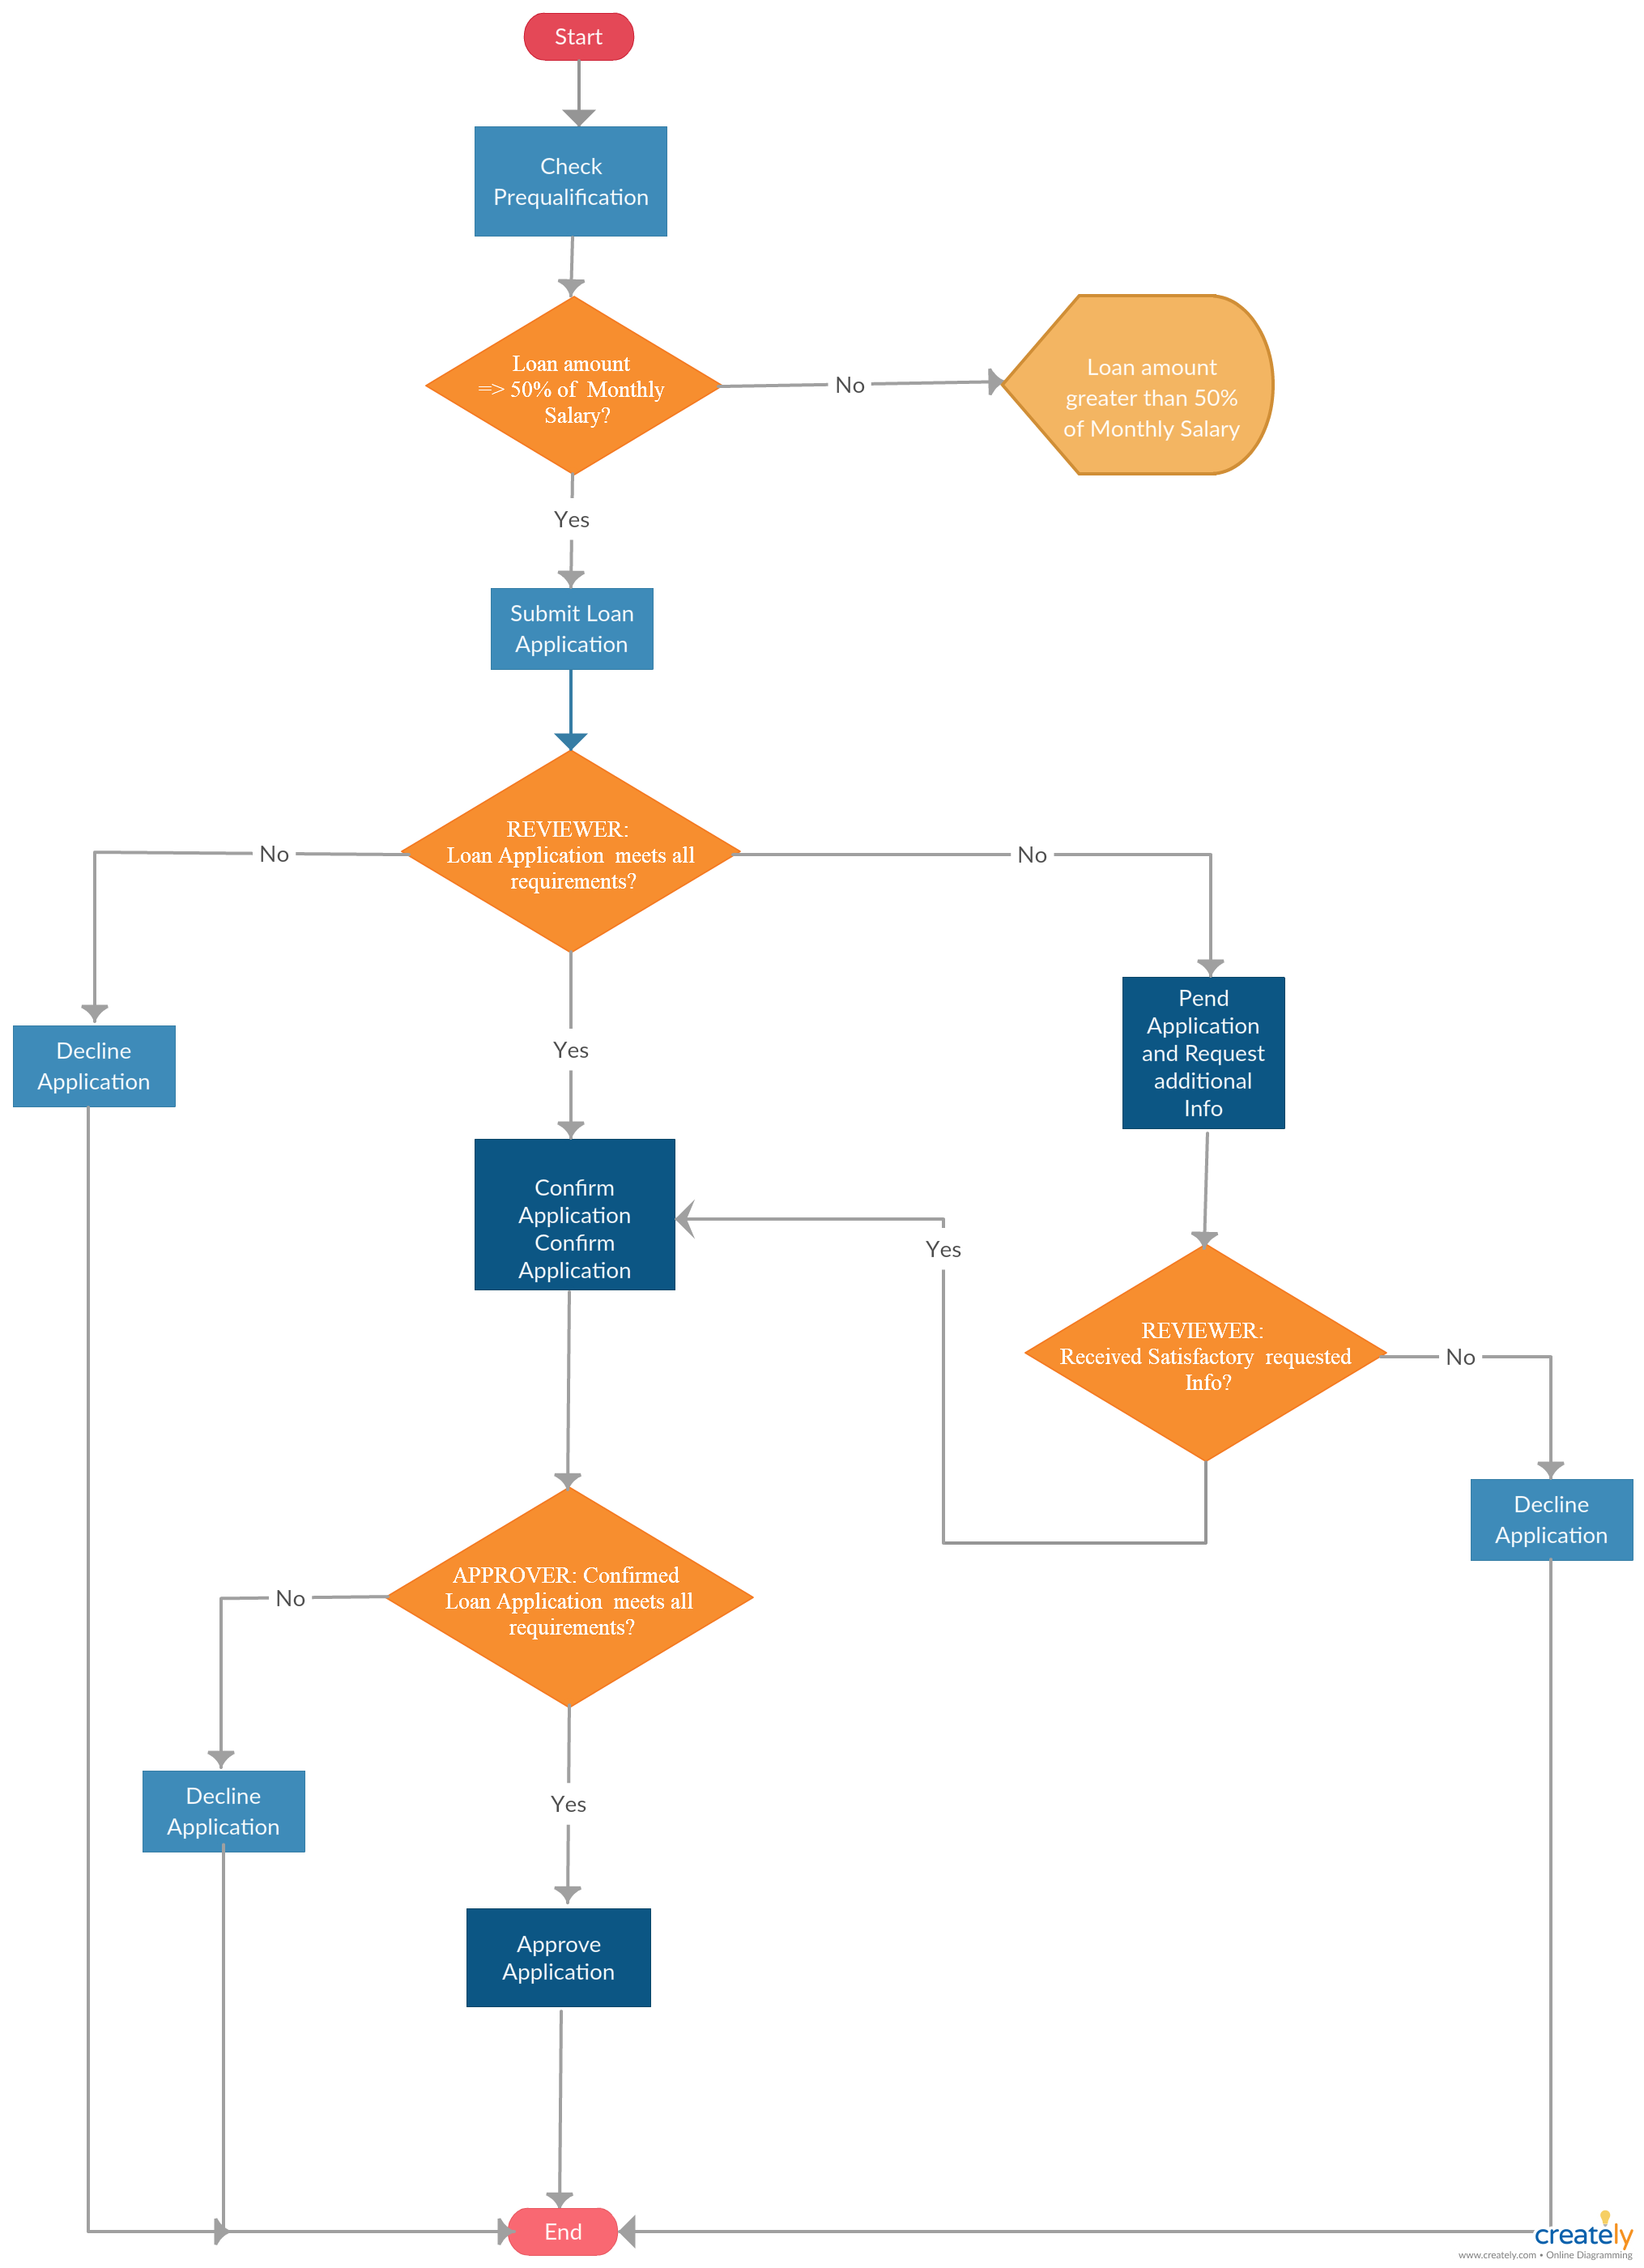 Loan application and processing flowchart the flowchart explains loan application and processing flowchart the flowchart explains the application and processing flow of the geenschuldenfo Image collections